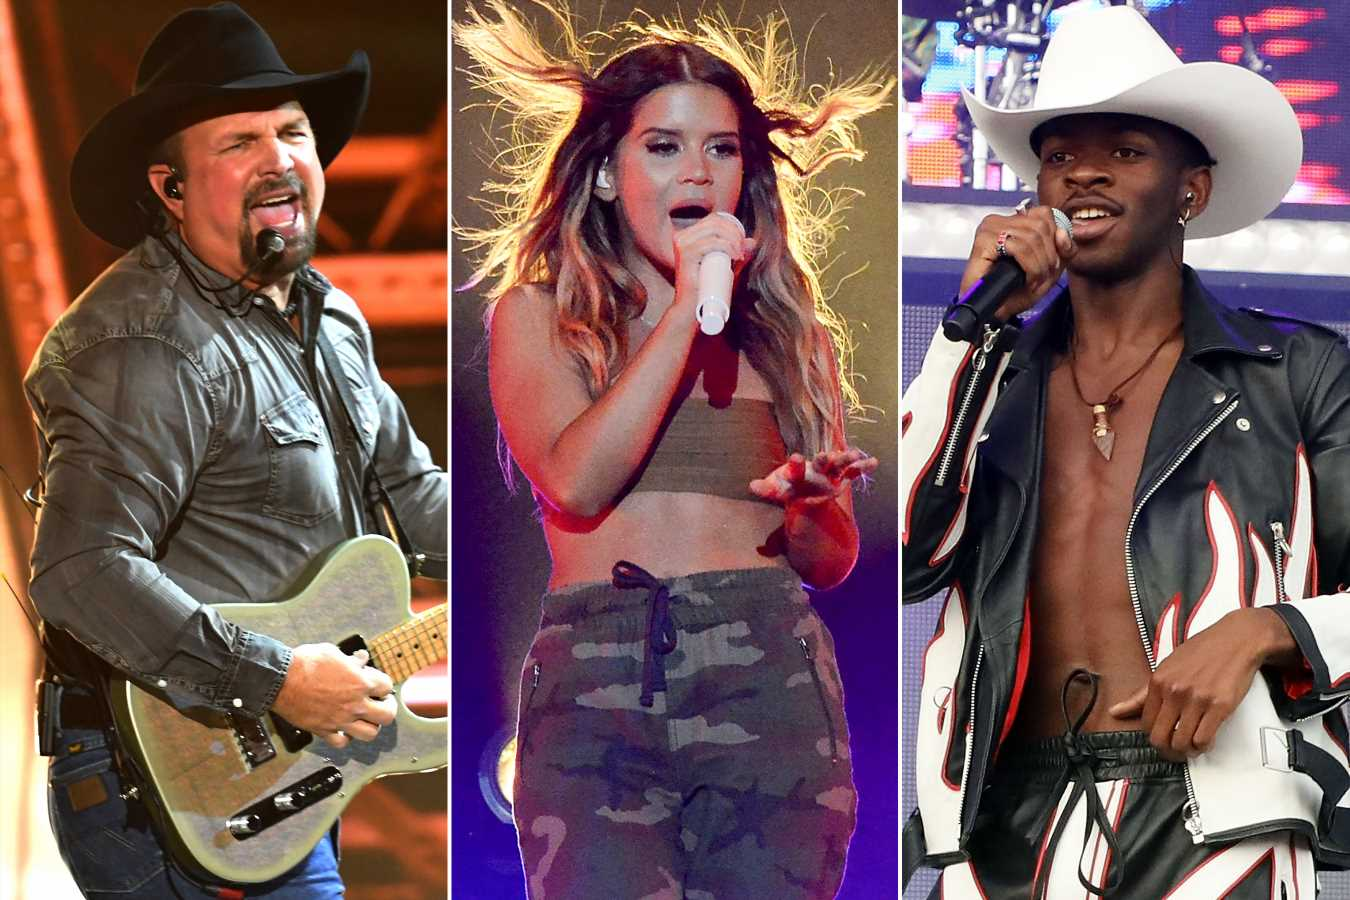 2019 CMA Awards: Maren Morris, Old Town Road earn nominations